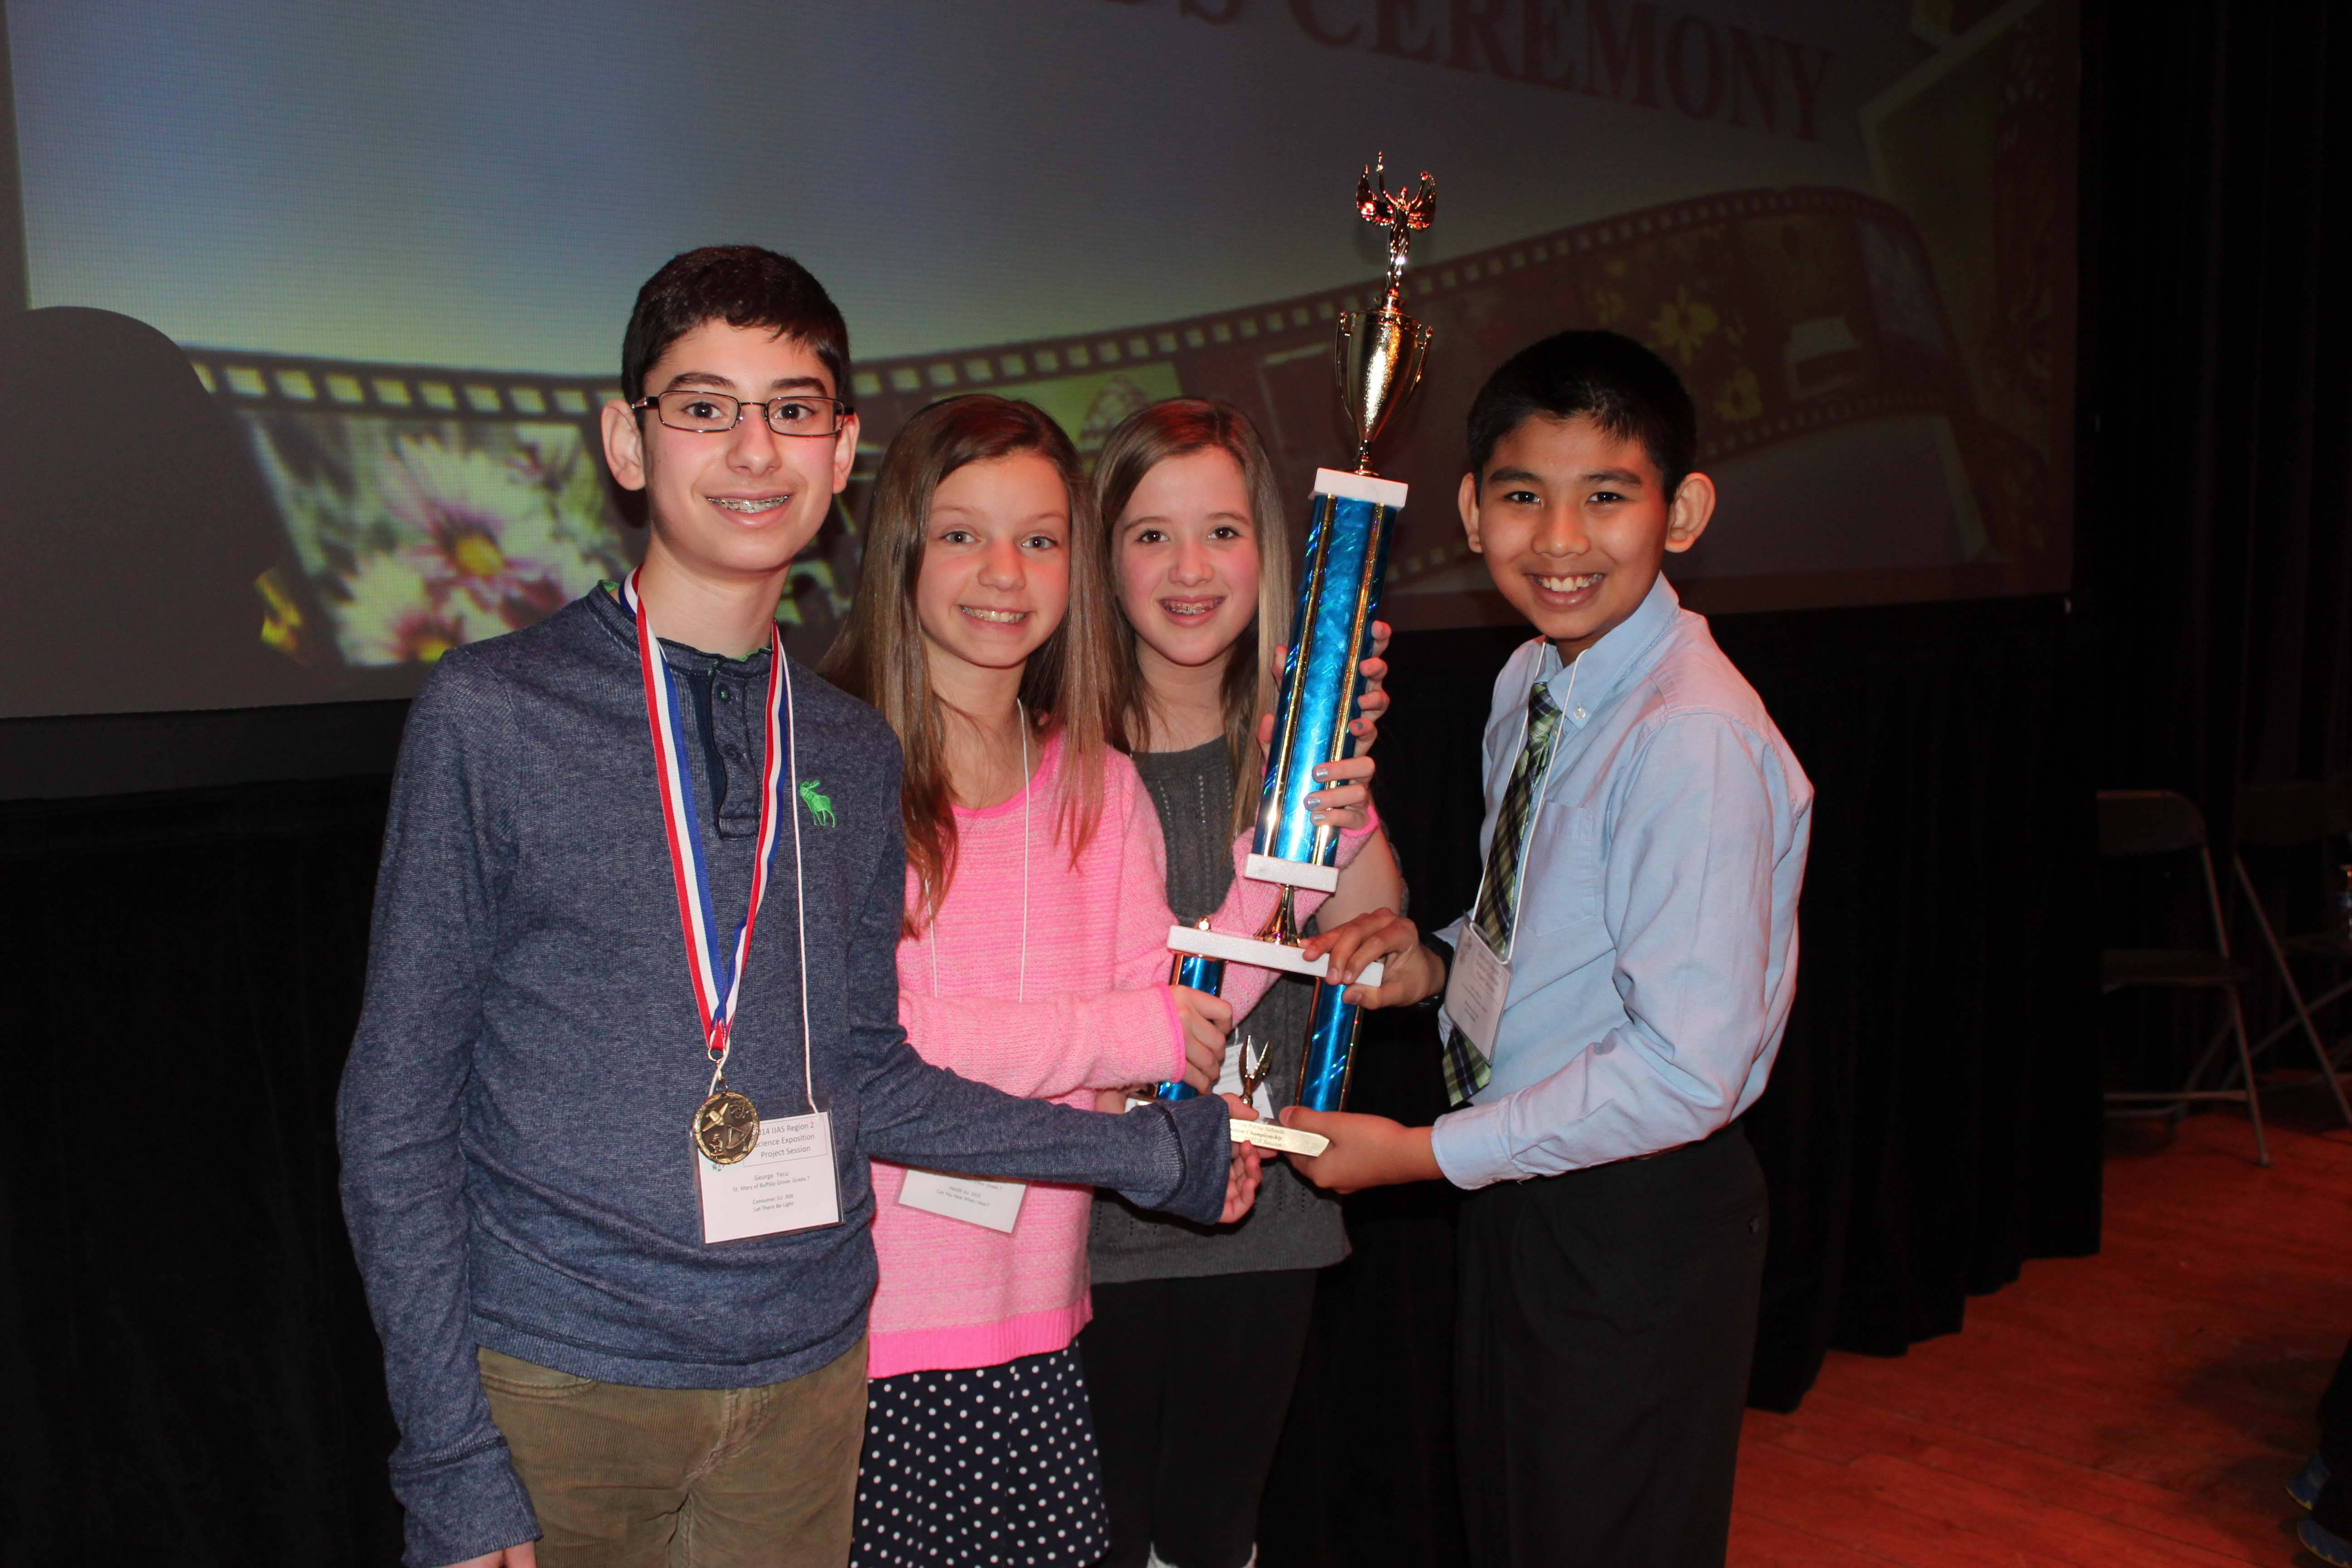 Saint Mary 7th graders, George Yacu (Wheeling), Ally Schwabe (Arlington Heights), Hailey Keenan (Buffalo Grove) and John Antony (Buffalo Grove)hold the Championship trophy for the Top School in the paper session.Lisa Schwabe, Saint Mary Public Relations